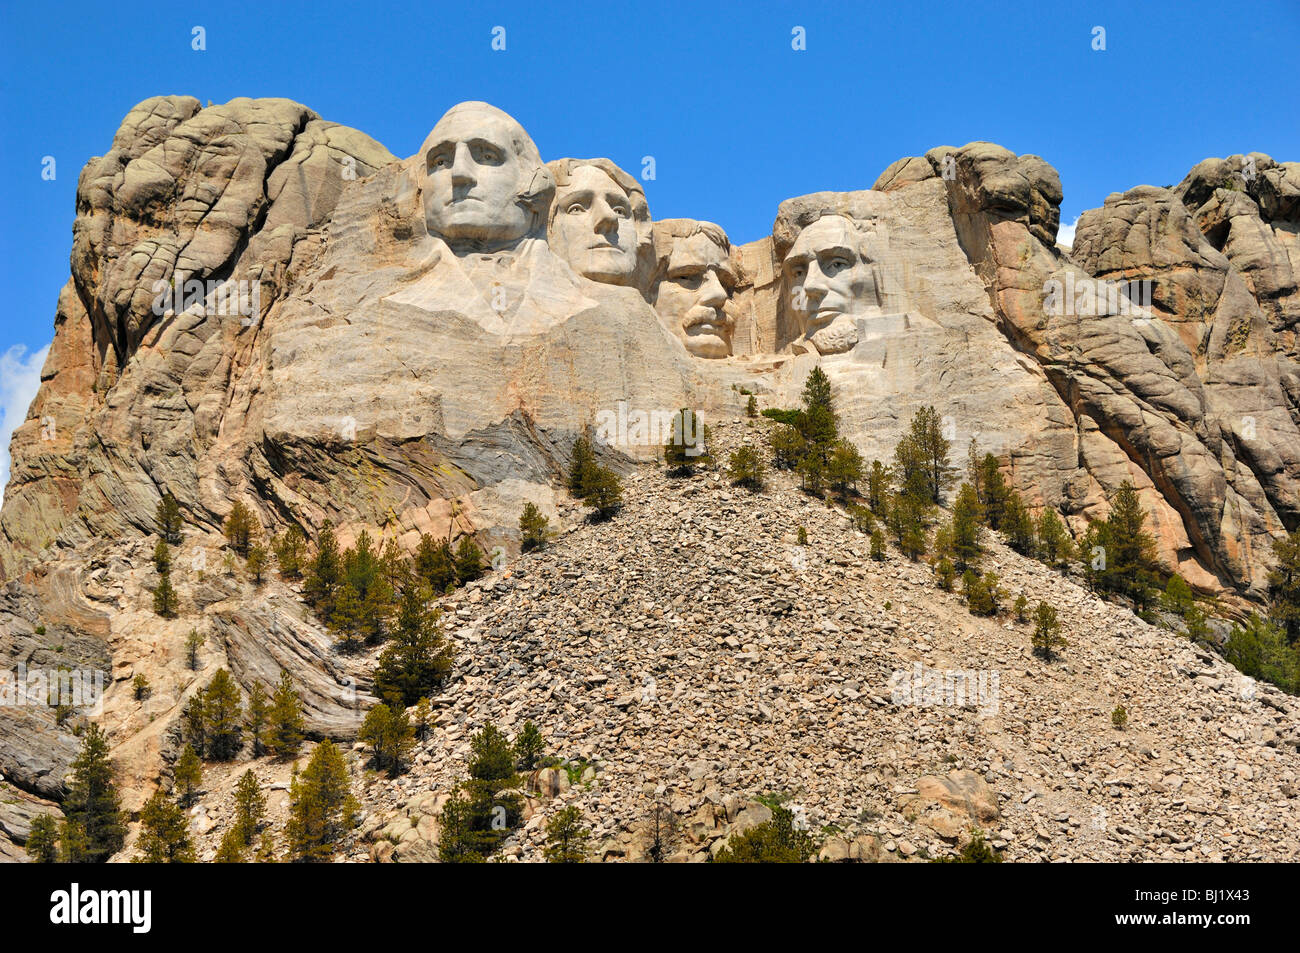 Four Presidents at Mount Rushmore National Monument, near Rapid City, South Dakota, USA Stock Photo